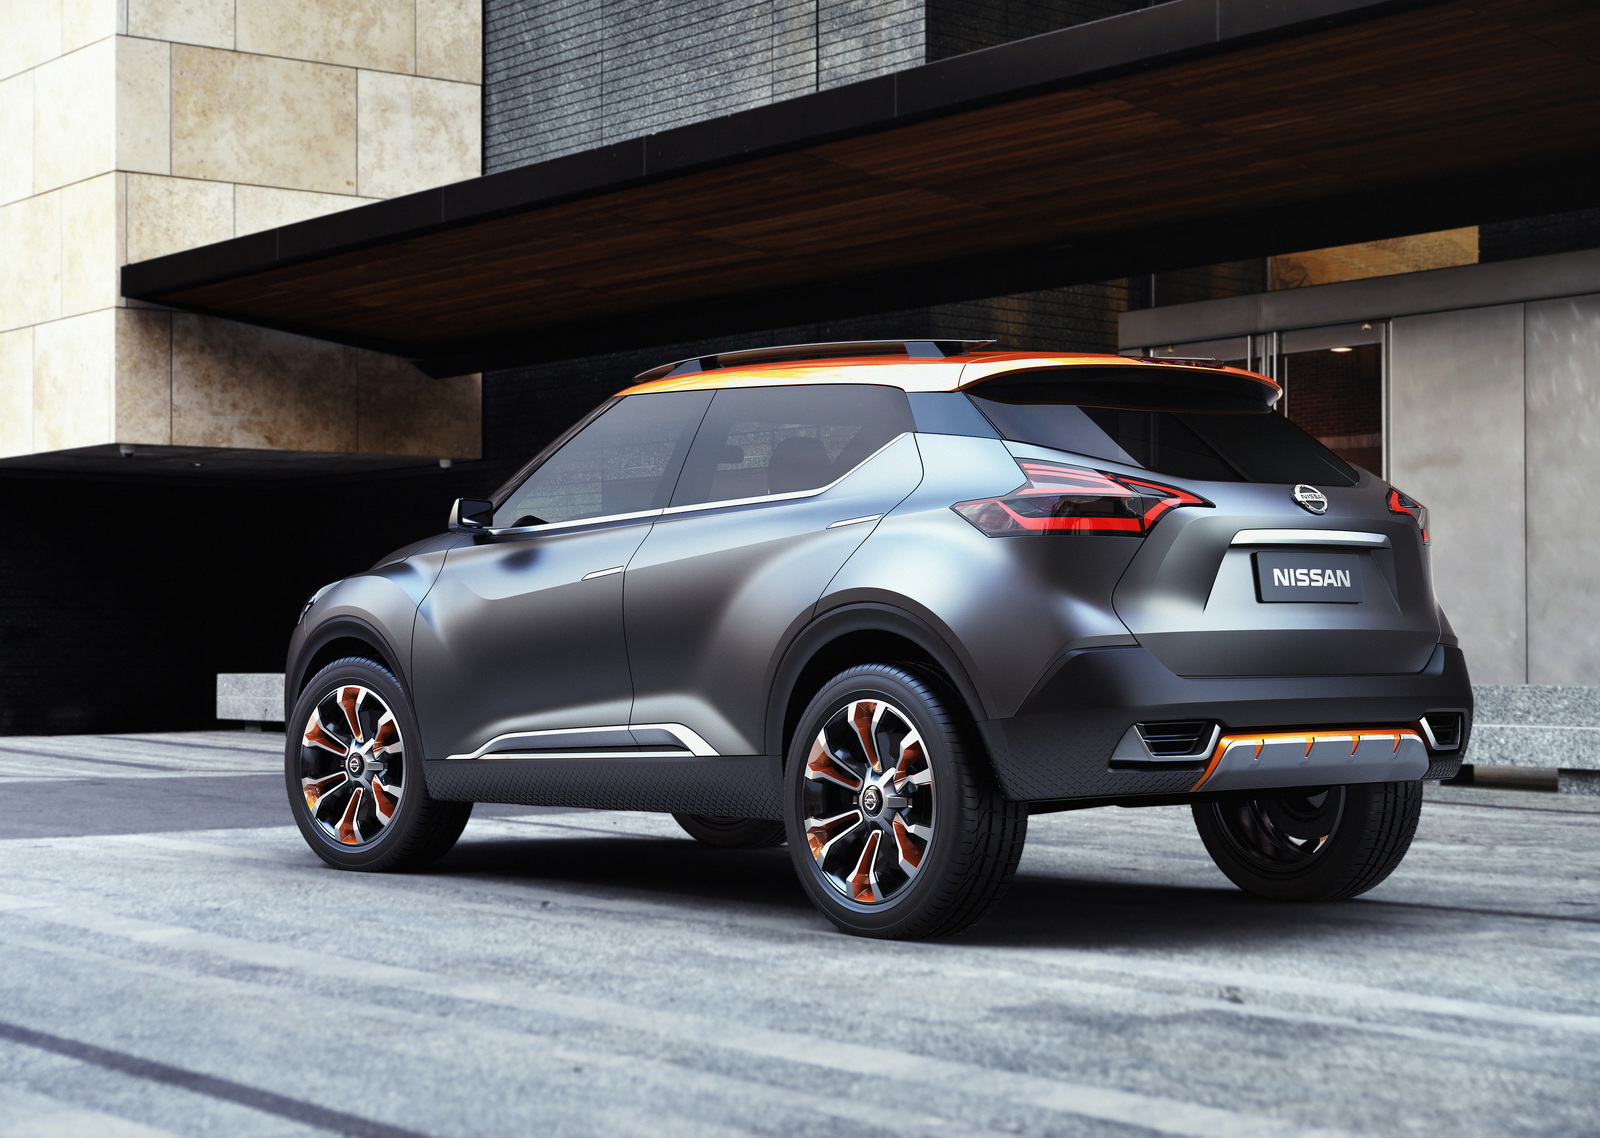 nissan kicks concept previews brazil specific compact suv motoroids. Black Bedroom Furniture Sets. Home Design Ideas